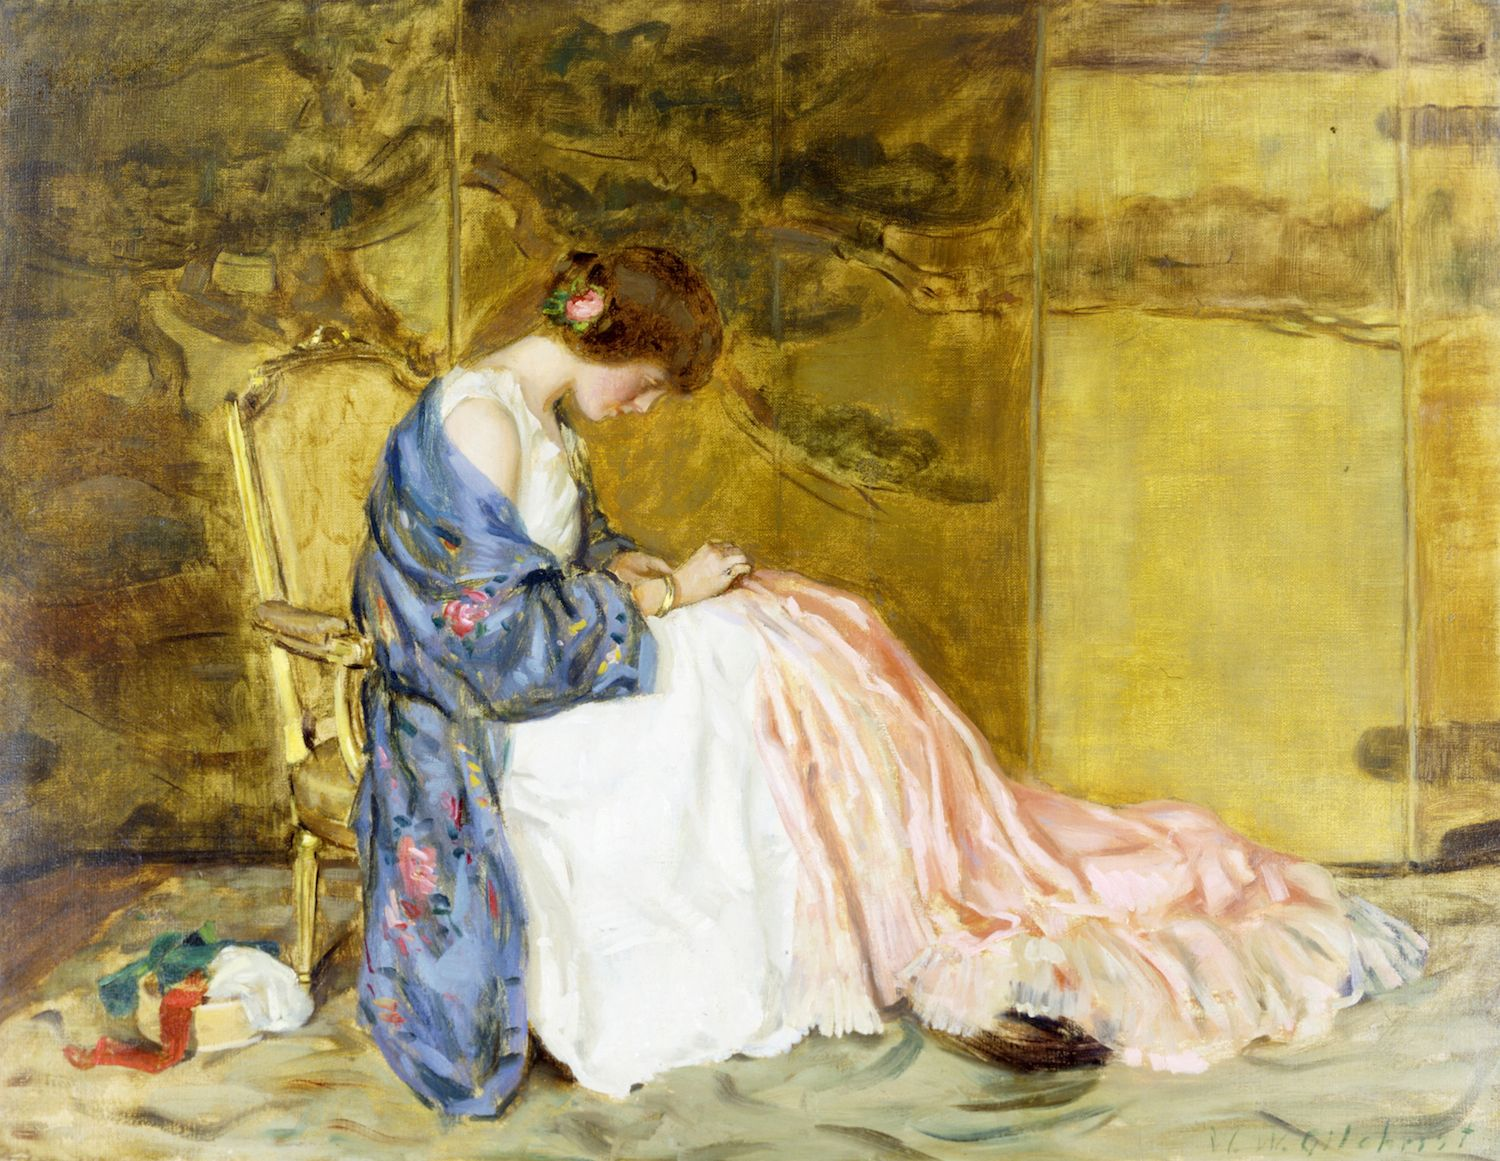 William Wallace Gilchrist, Sewing a Party Dress